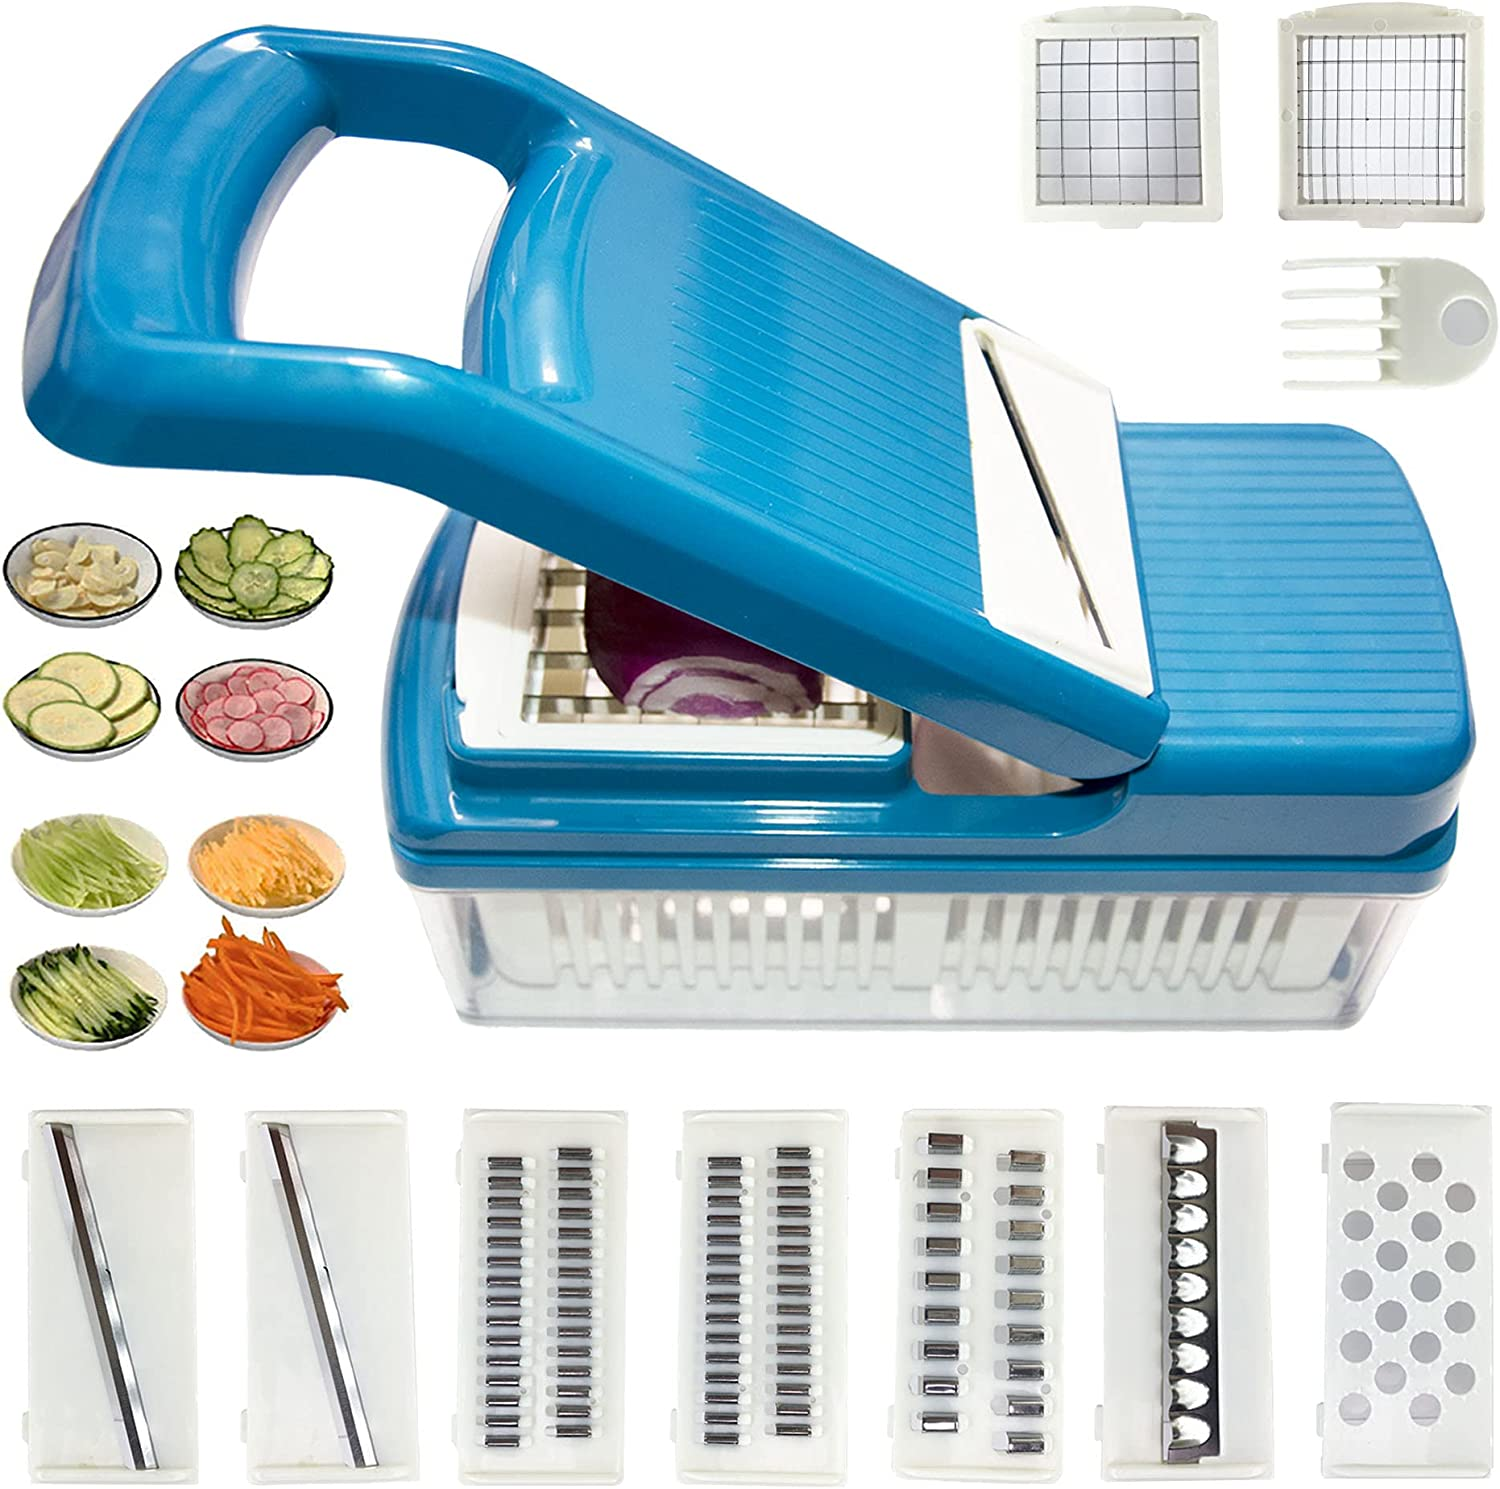 Manual Food Processors,12 in 1 Multi-Function Vegetable Cutter and Food Chopper,with9 Replaceable Stainless Steel blades for Onion Potato Tomato Fruit Ideal Gift for Home Kitchen